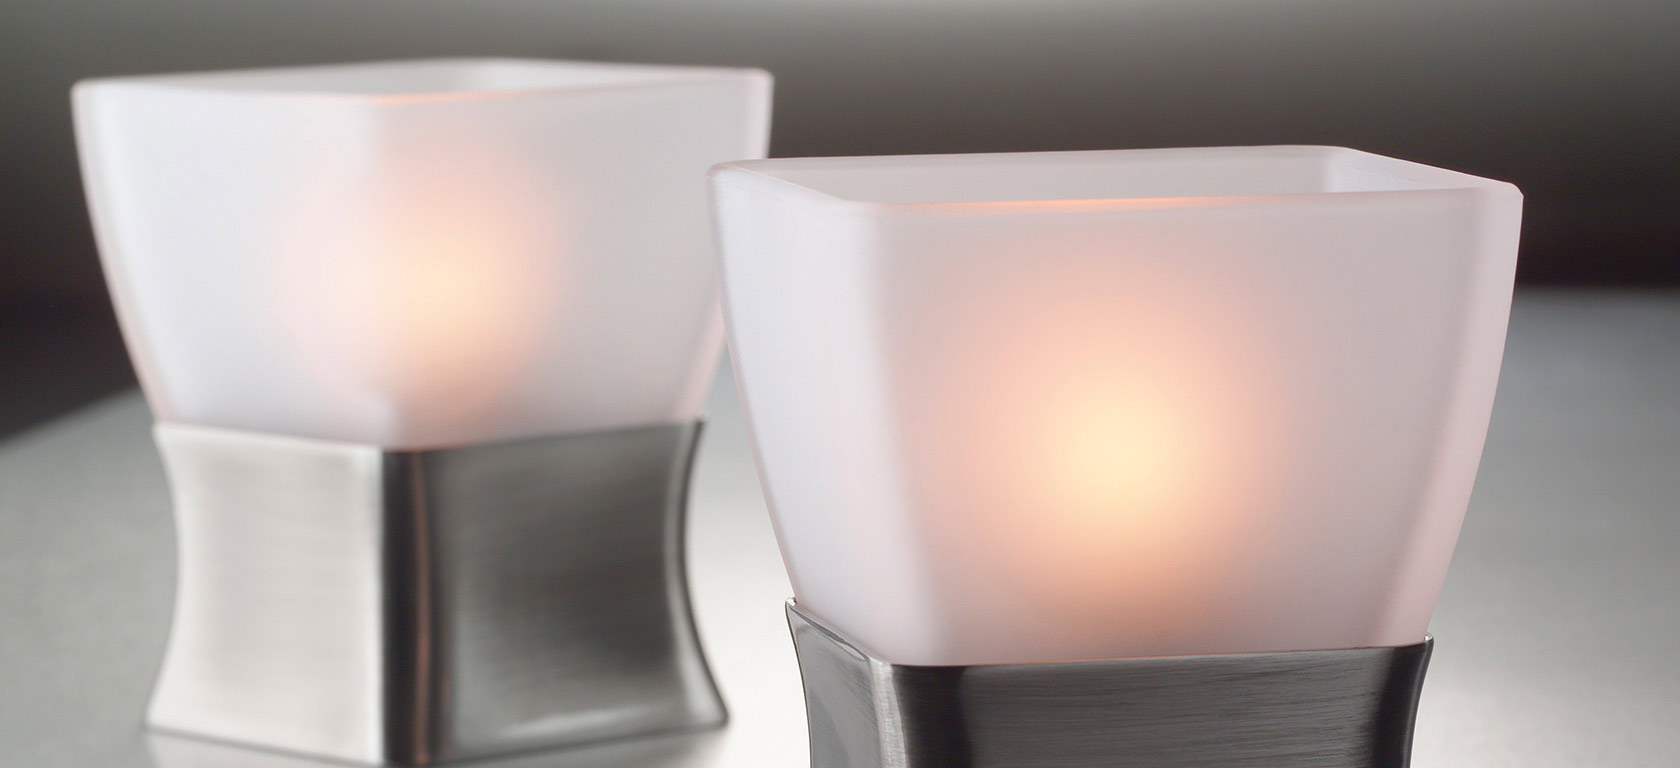 White frosted glass candle holders in a tapered square shape.